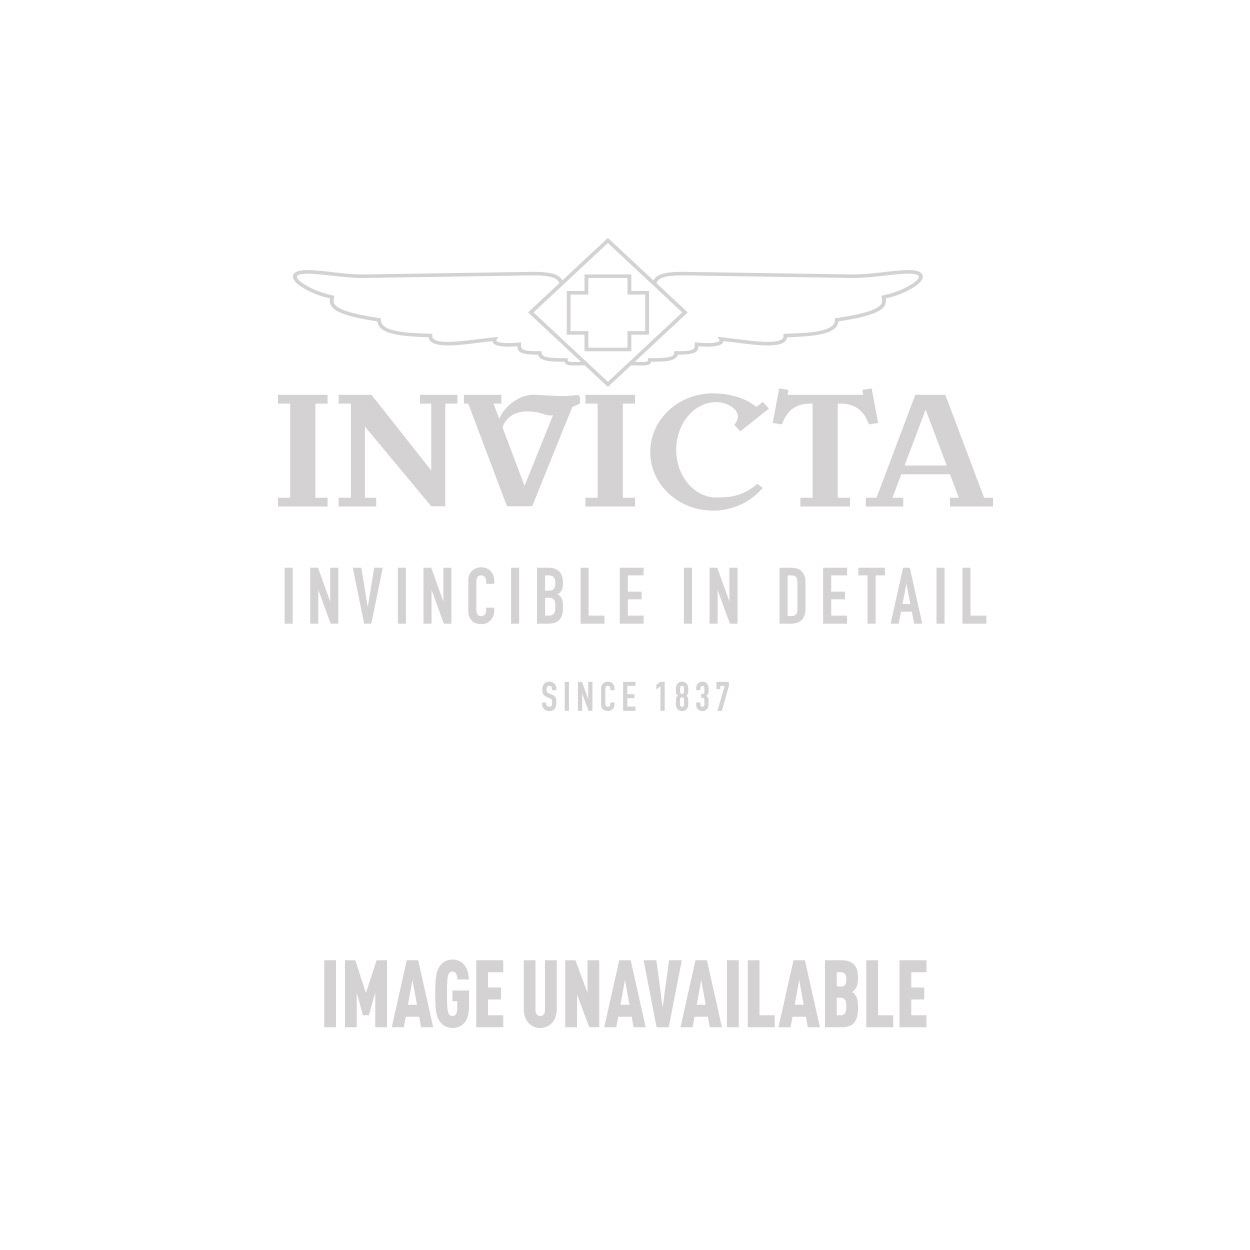 Invicta Angel Swiss Movement Quartz Watch - Rose Gold, Stainless Steel case Stainless Steel band - Model 14528